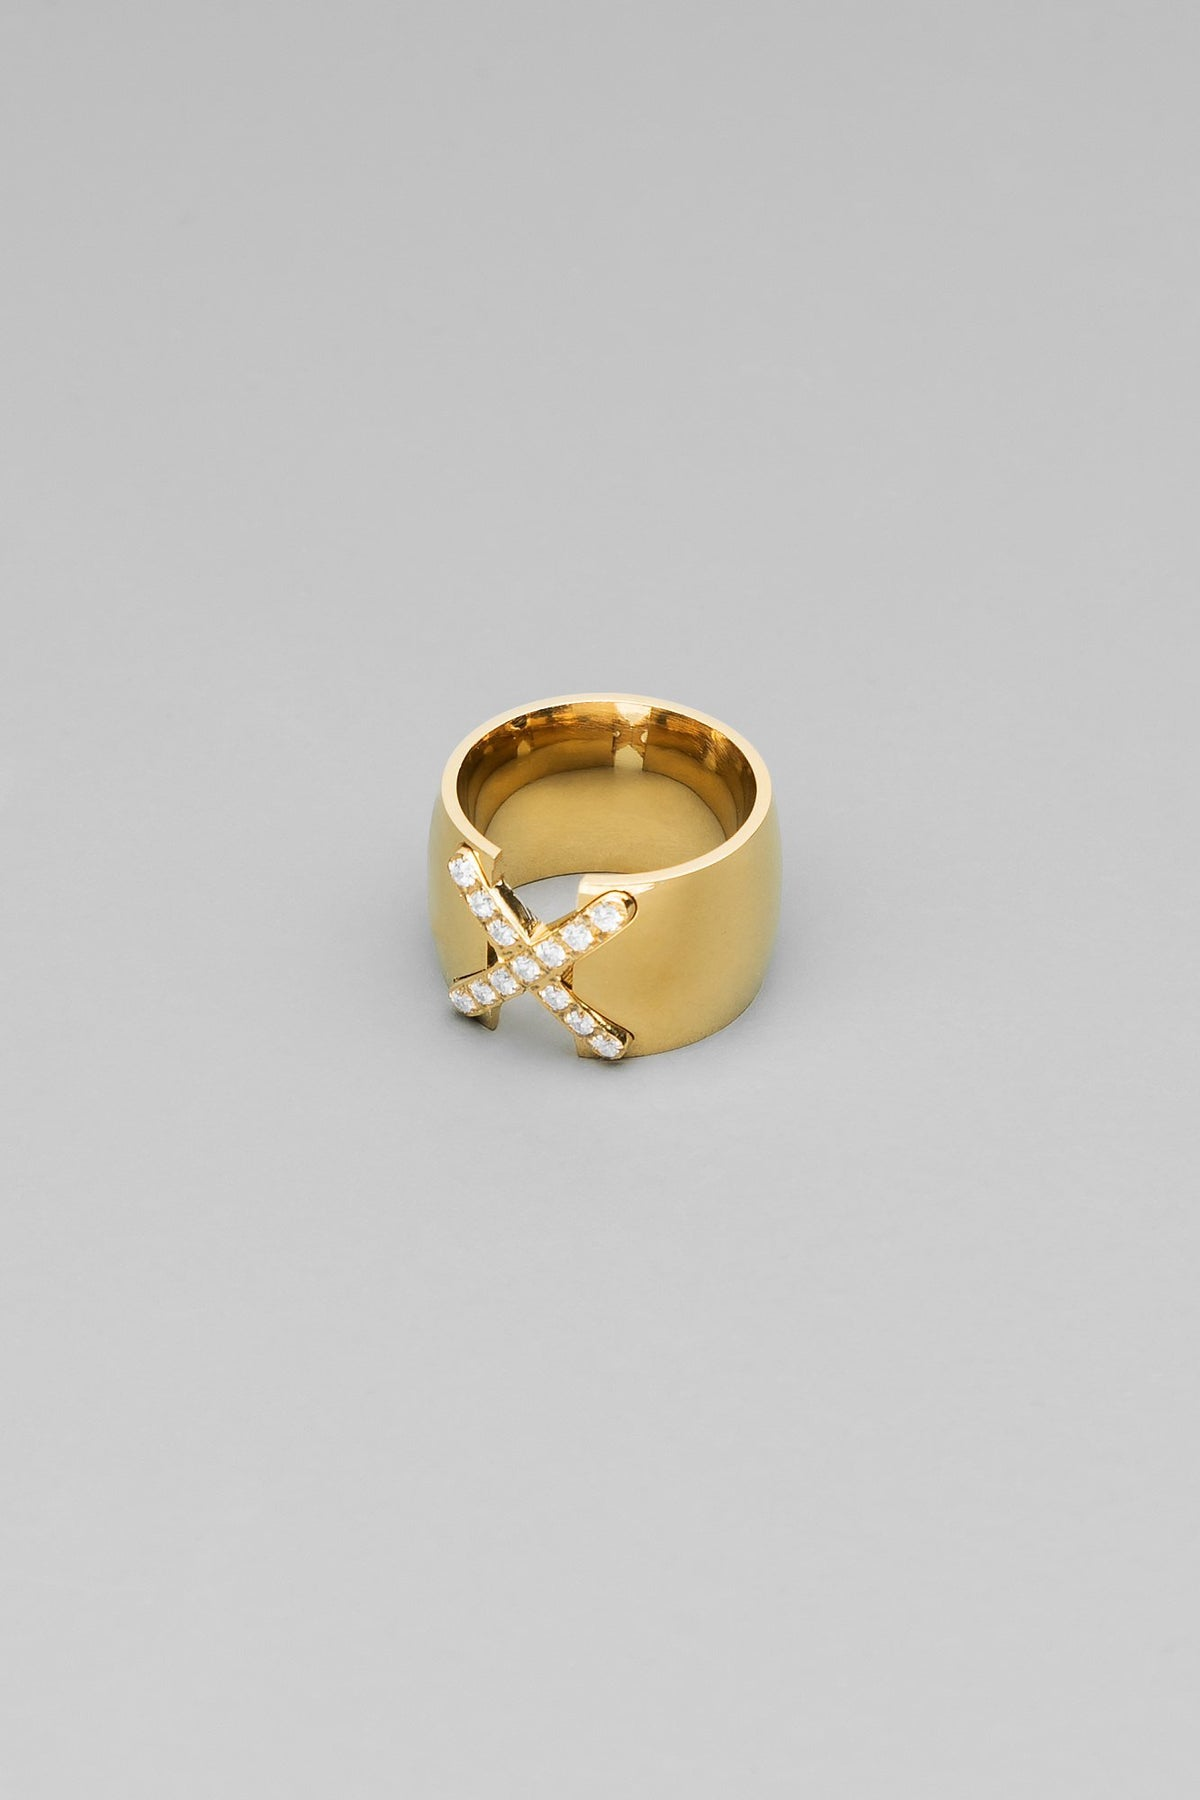 X Marks The Spot CZ Gold Ring